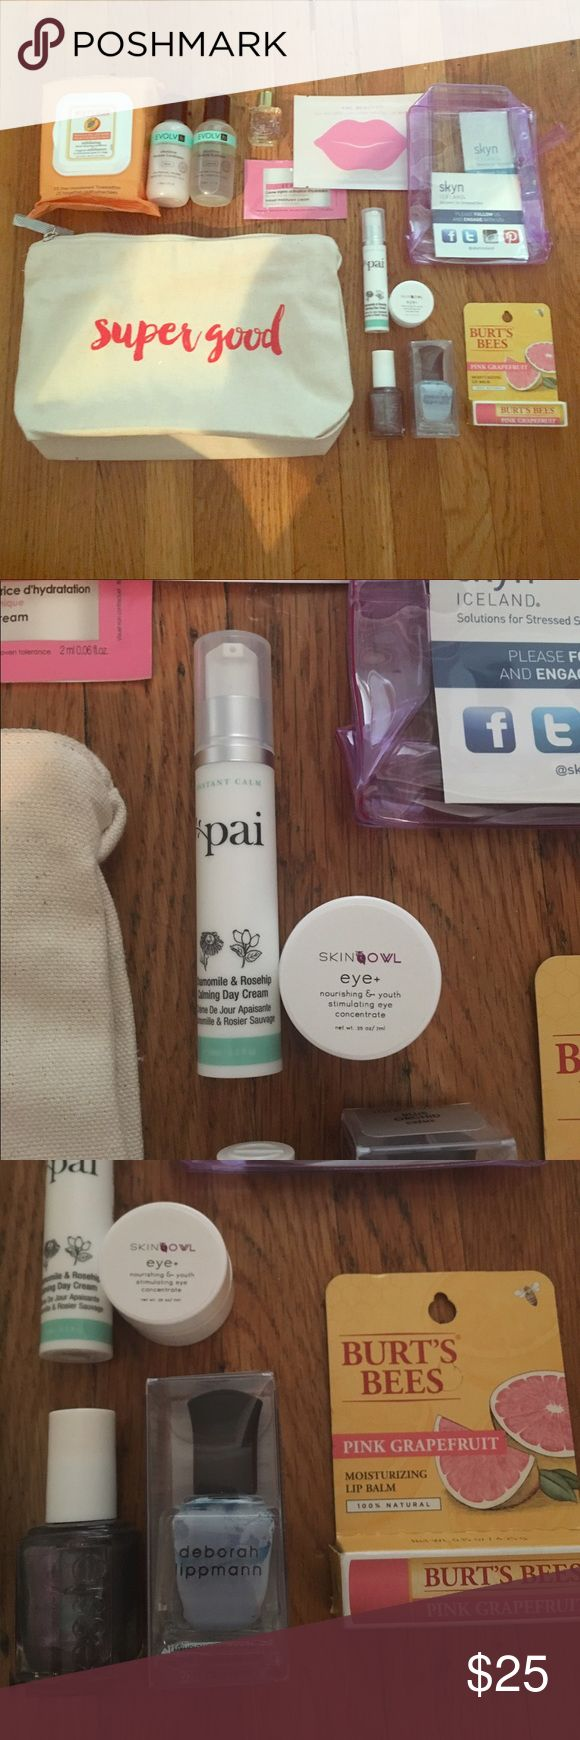 Best swag bag ever! Full of brand new goodies! Pai, Burts Bees, KNC Beauty, Lollia, and more! Makeup